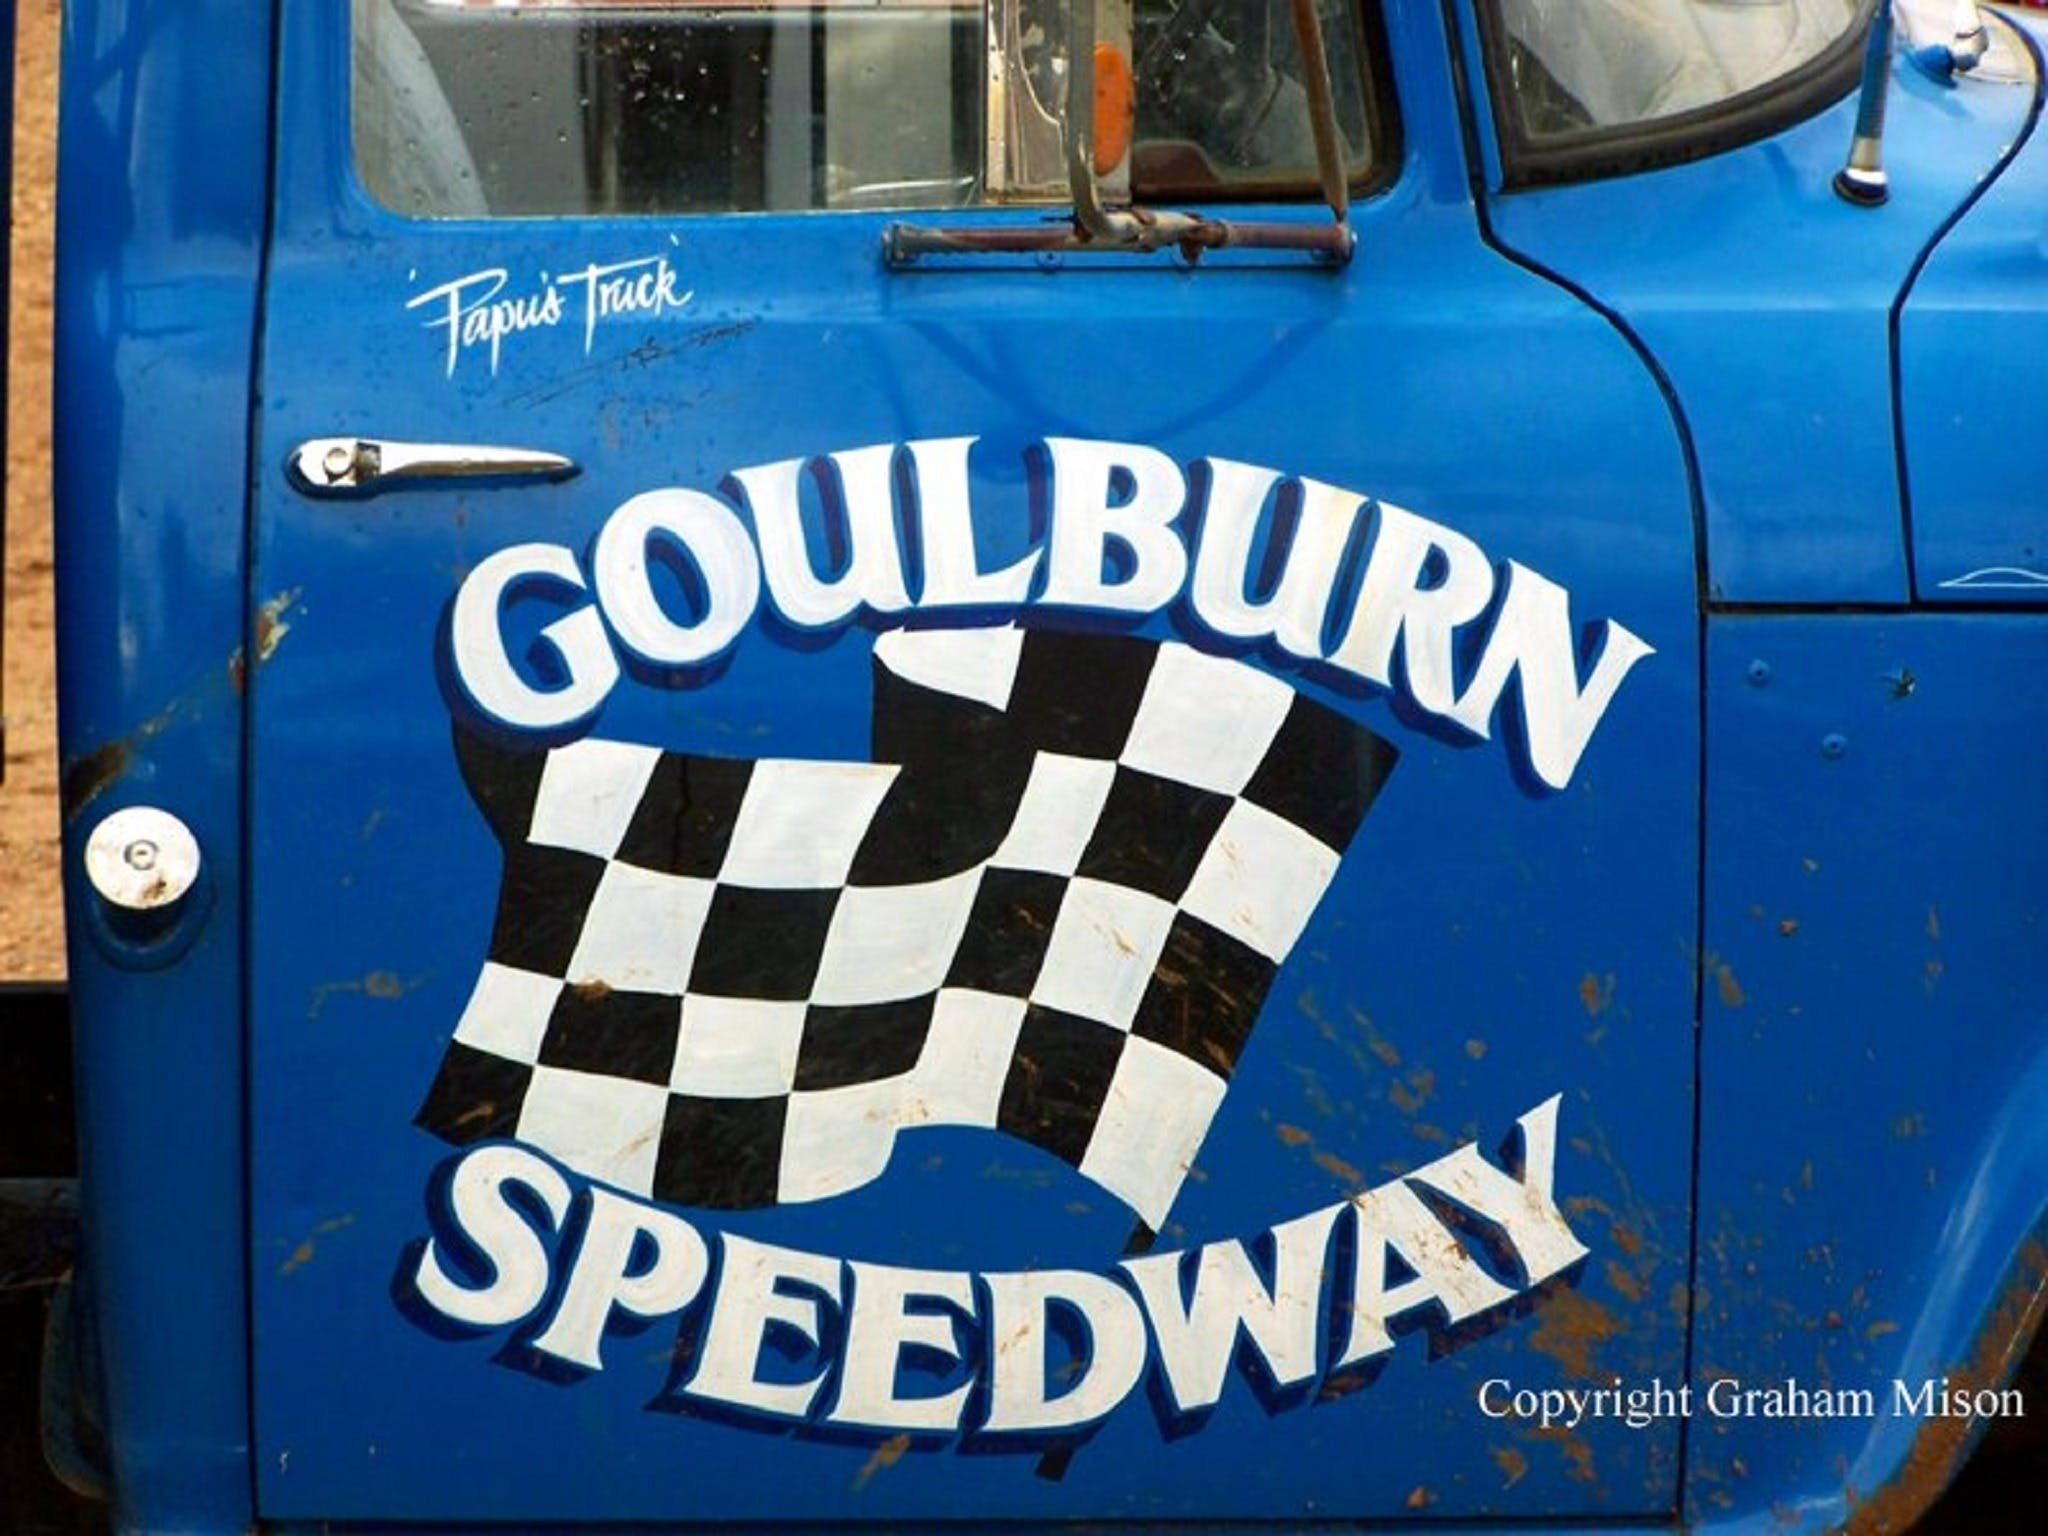 50 years of racing at Goulburn Speedway - Hotel Accommodation